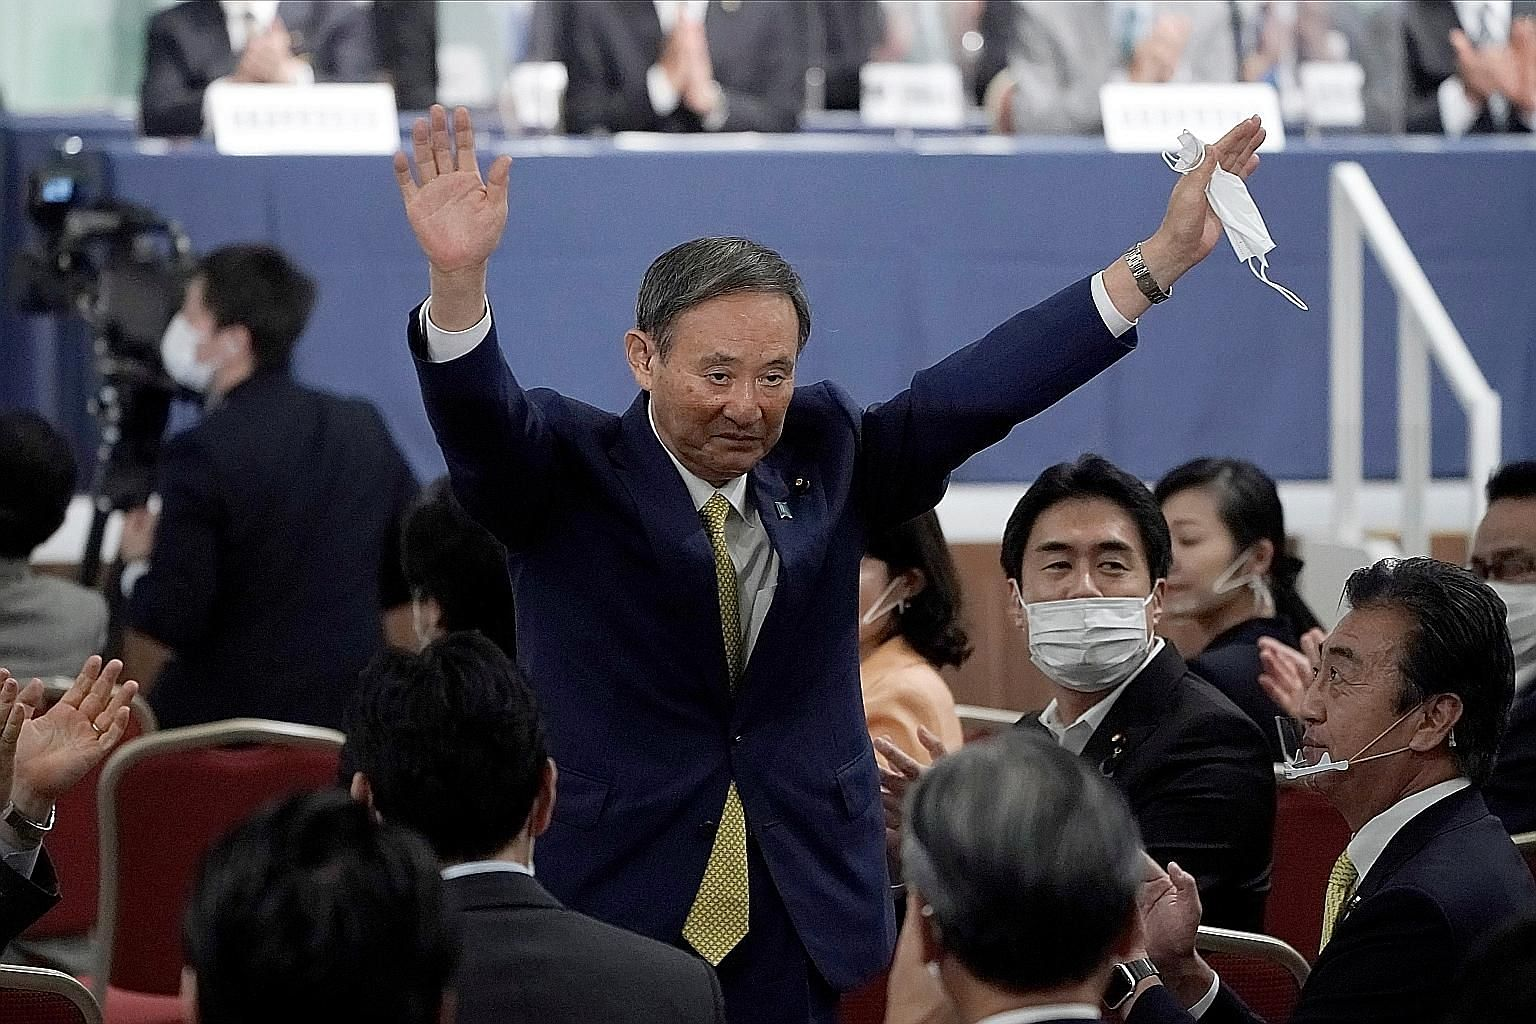 Japanese Chief Cabinet Secretary Yoshihide Suga acknowledging his victory after he was elected the new head of the ruling Liberal Democratic Party at the party's leadership election in Tokyo yesterday. He was the runaway champion, winning around 70 p